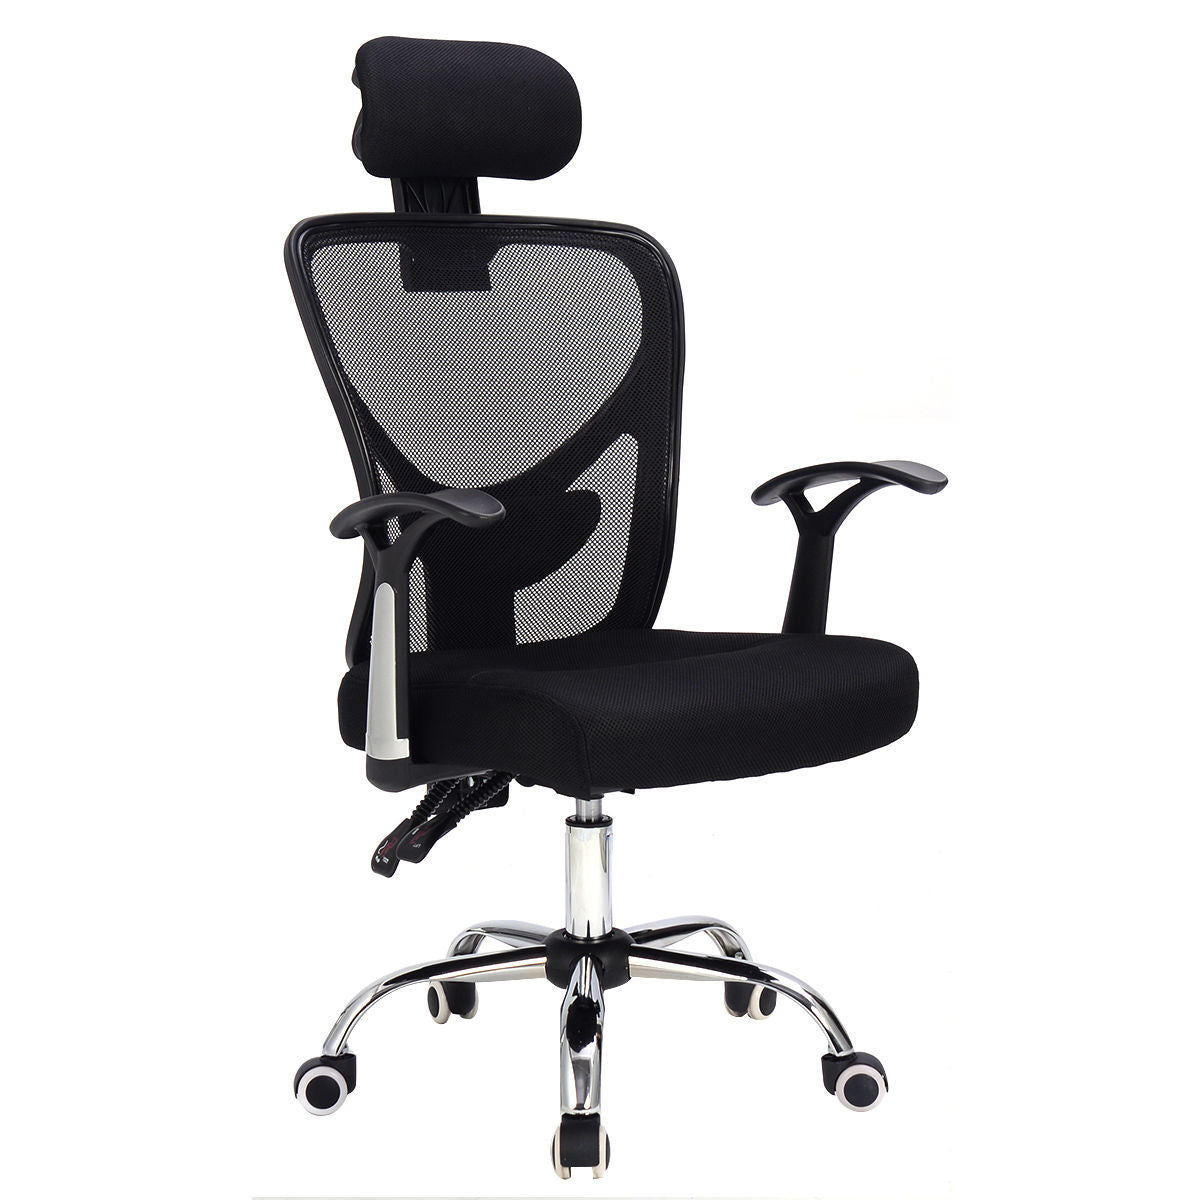 Ergonomic Mesh High Back Office Chair Computer Desk Task Executive with Headrest